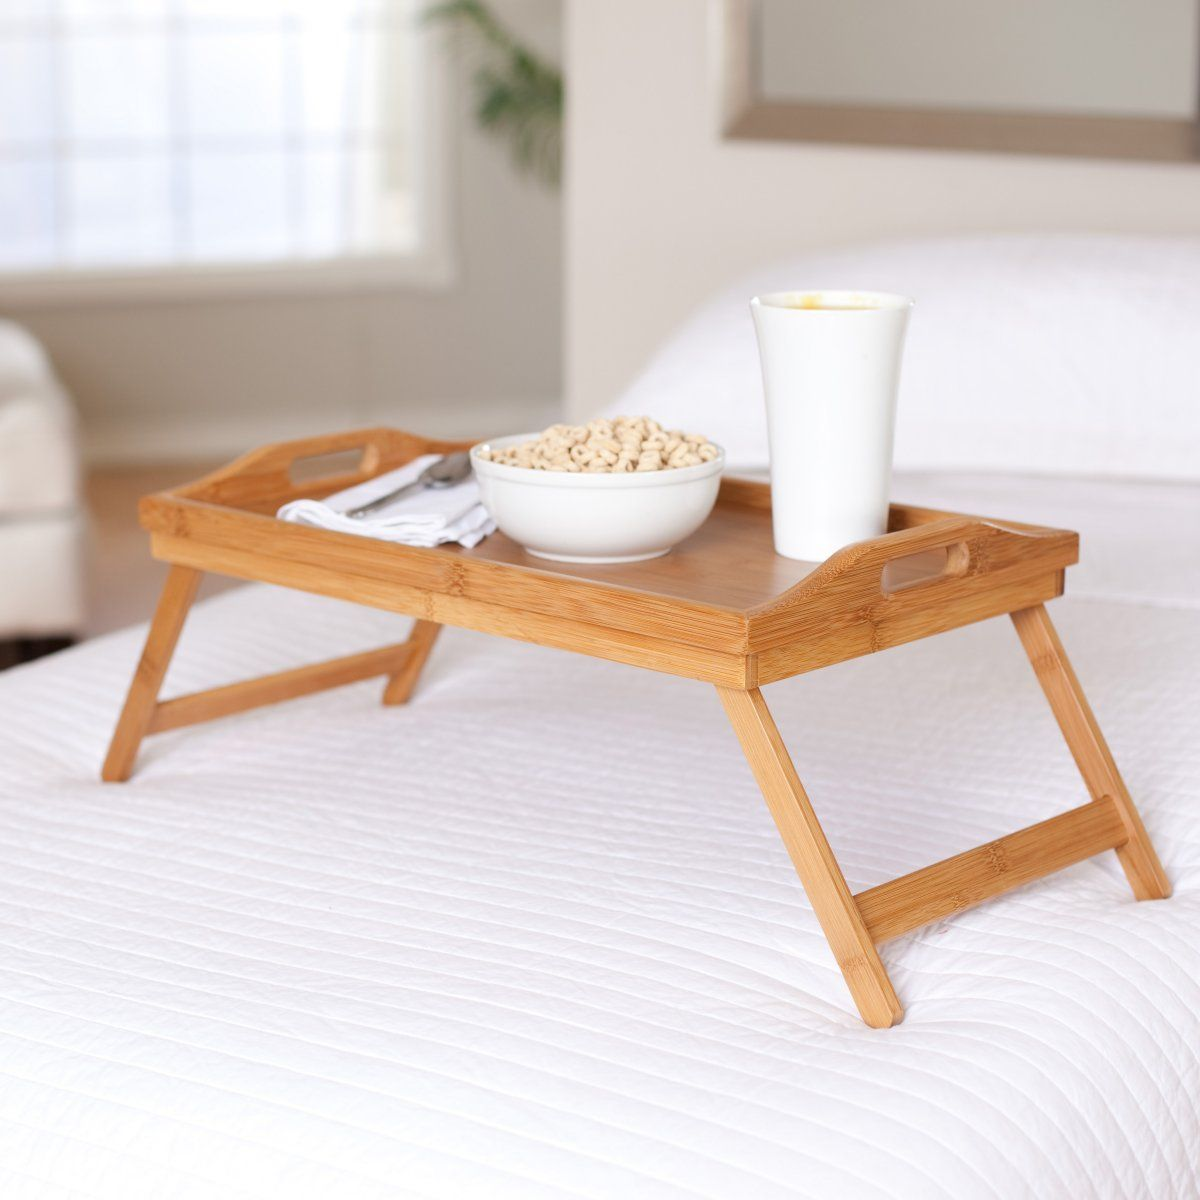 Bamboo Serving Tv Tray With Folding Legs Breakfast Bed Trays